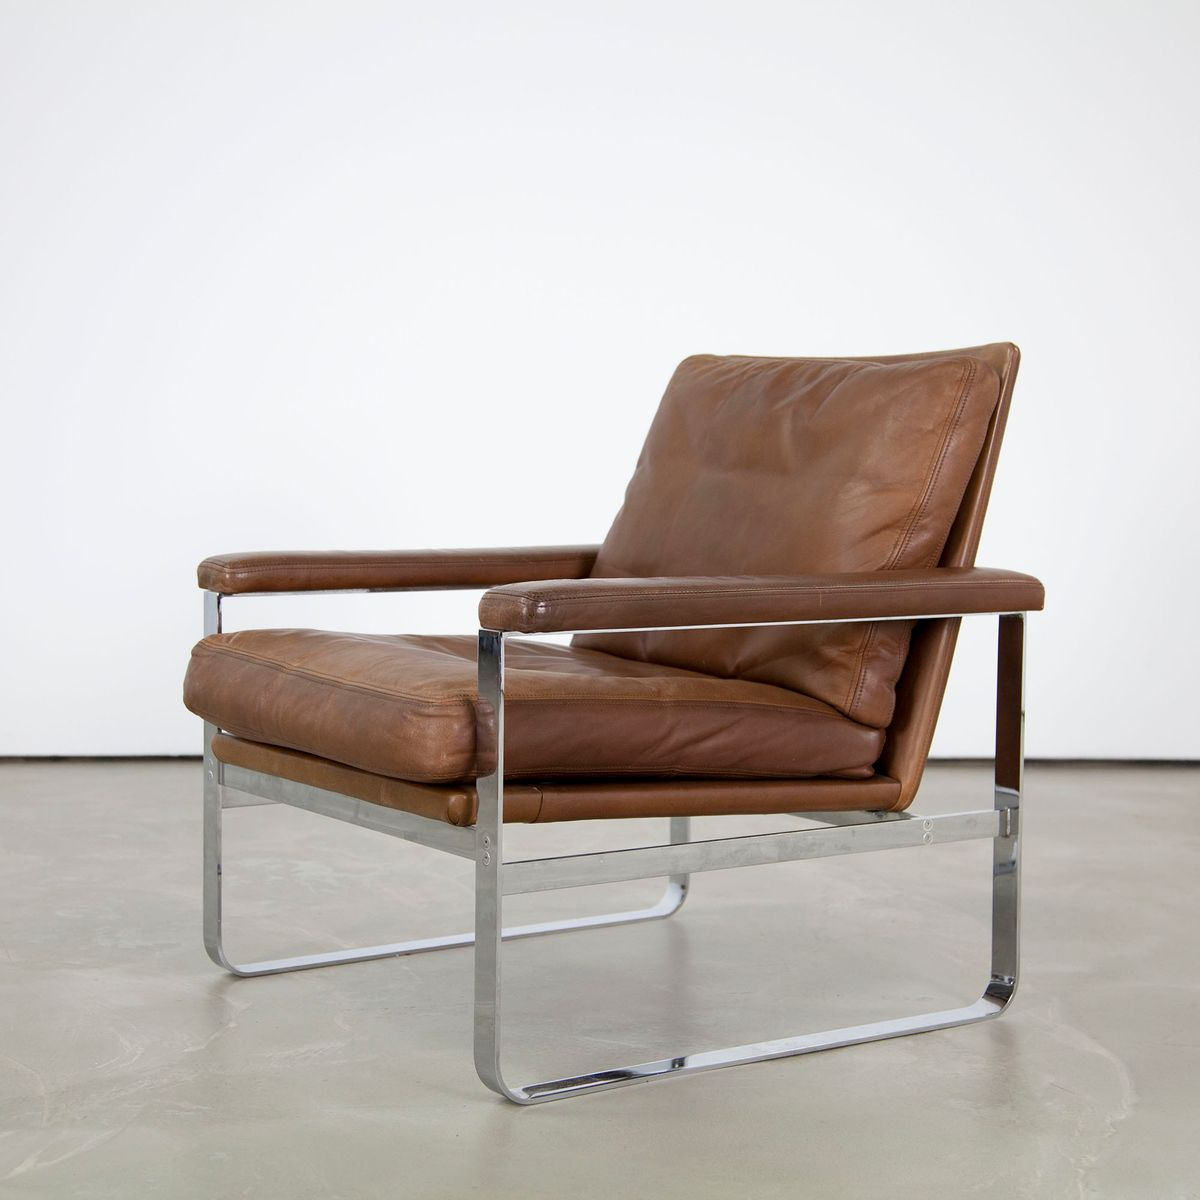 Danish Leather Armchair Danish Leather Armchair With Steel Frame For Sale At Pamono